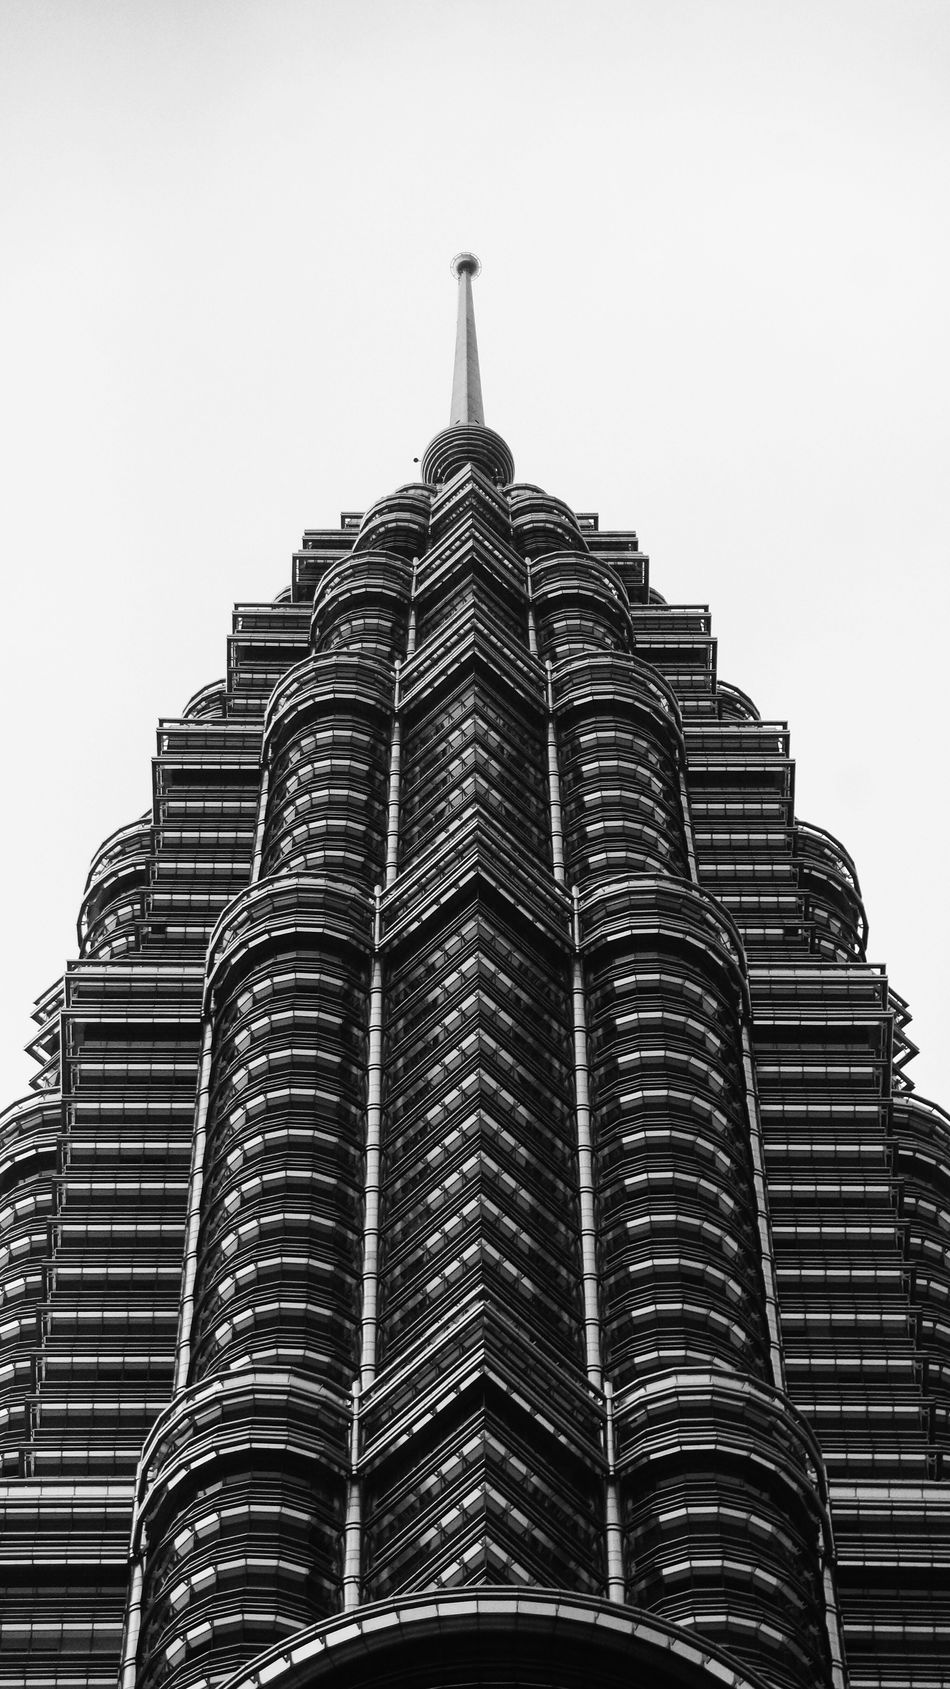 Architecture Built Structure Low Angle View Building Exterior Travel Destinations Modern Skyscraper No People Travel Outdoors Sky City Day Clear Sky